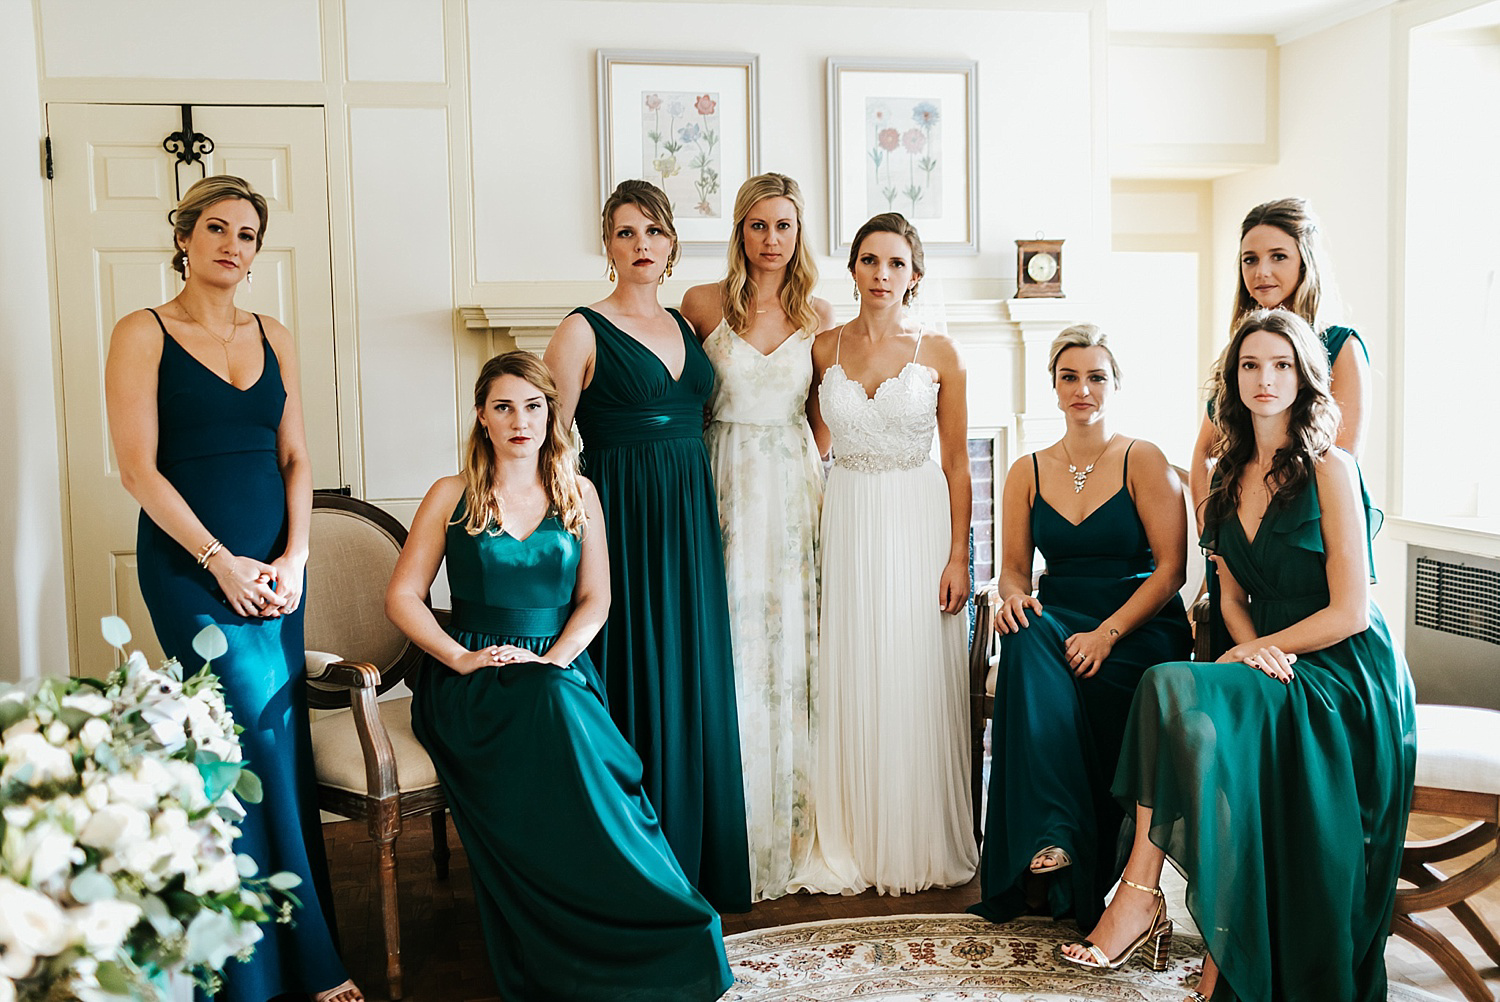 Bride and bridesmaids at philander chase knox by danfredo photos + films